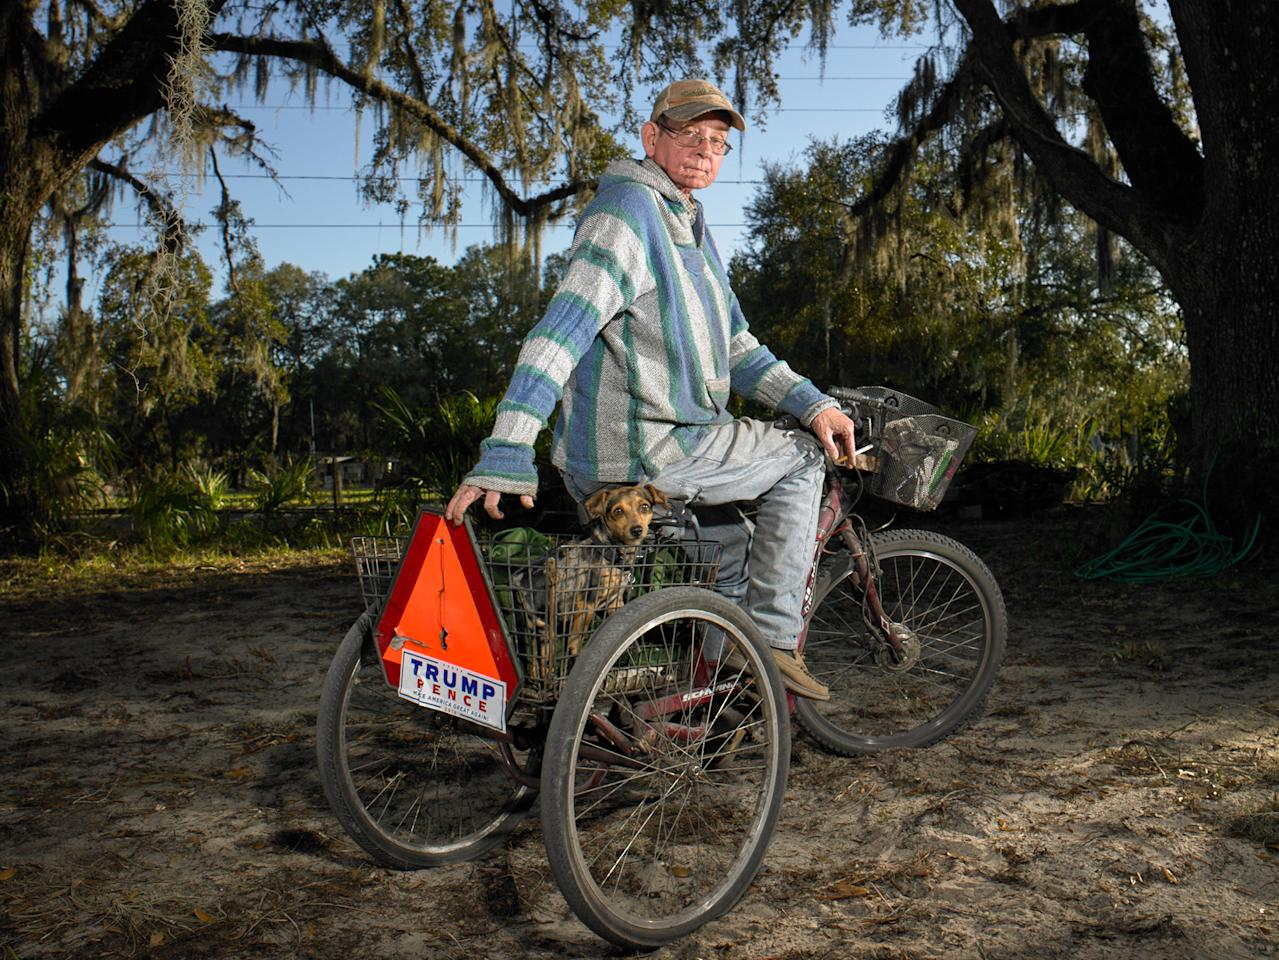 "<p>""Born-again Christian Calvin Moffitt and his dog Shakira live in Cross City, Fla. Although he has a Trump-Pence bumper sticker on his tricycle, he couldn't vote because he's a convicted felon. At the time he told me he hoped they wouldn't repeal Obamacare as he is dependent on it and not old enough for Medicare just yet."" (Photograph and caption by Naomi Harris) </p>"